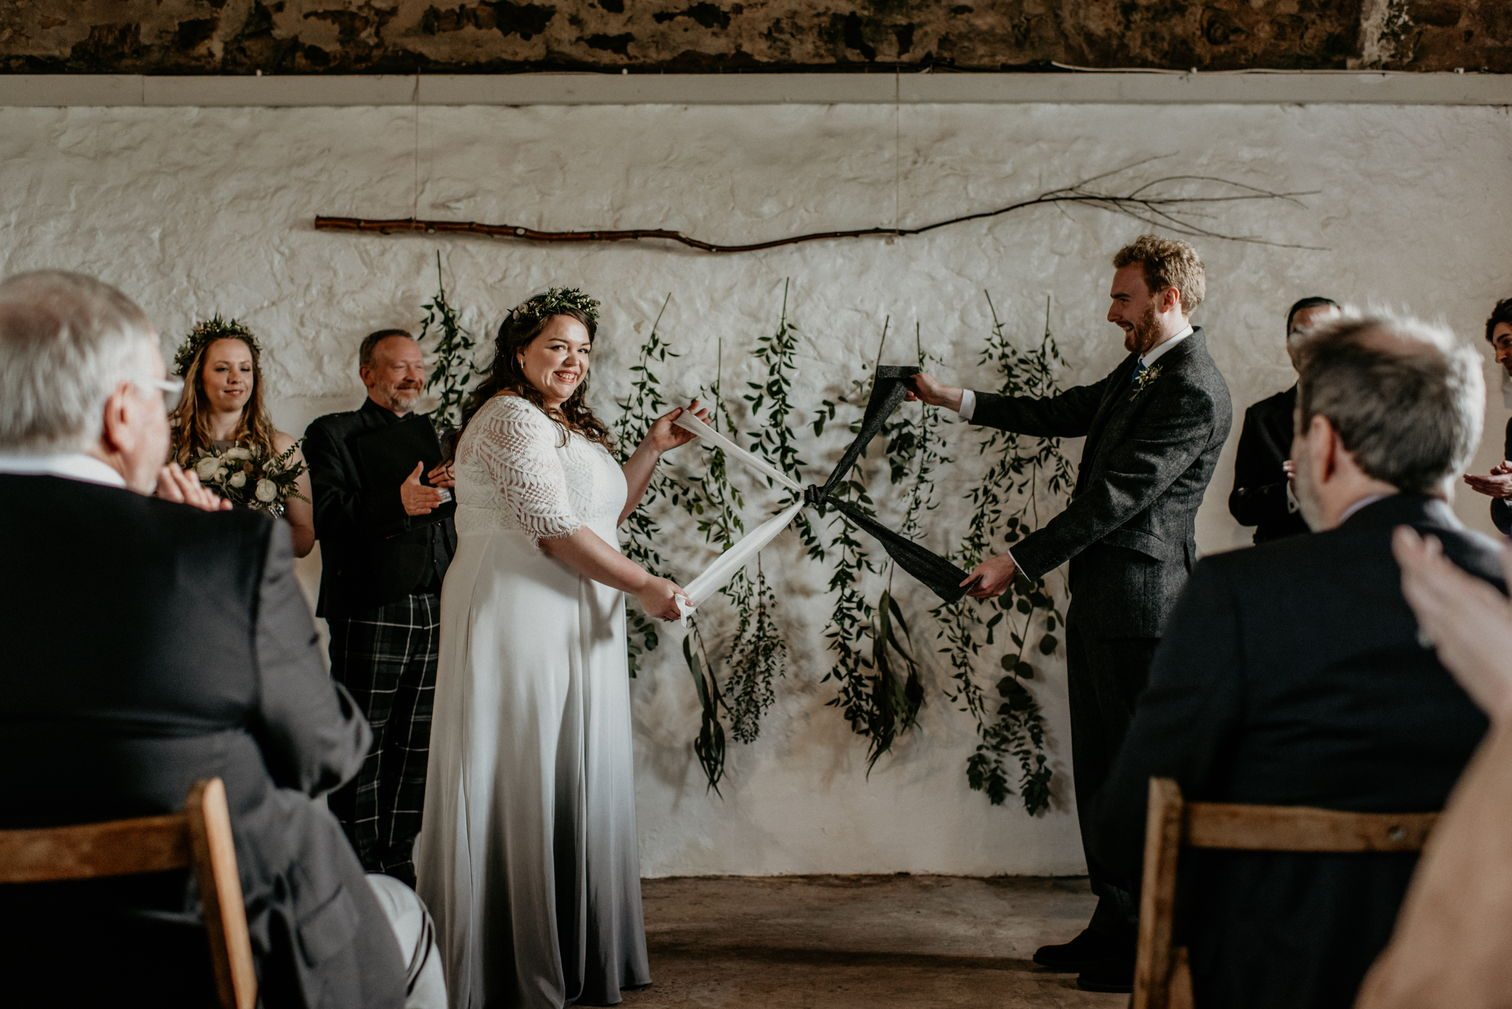 Alex and me 'tying the knot' with the hand fasting ceremony